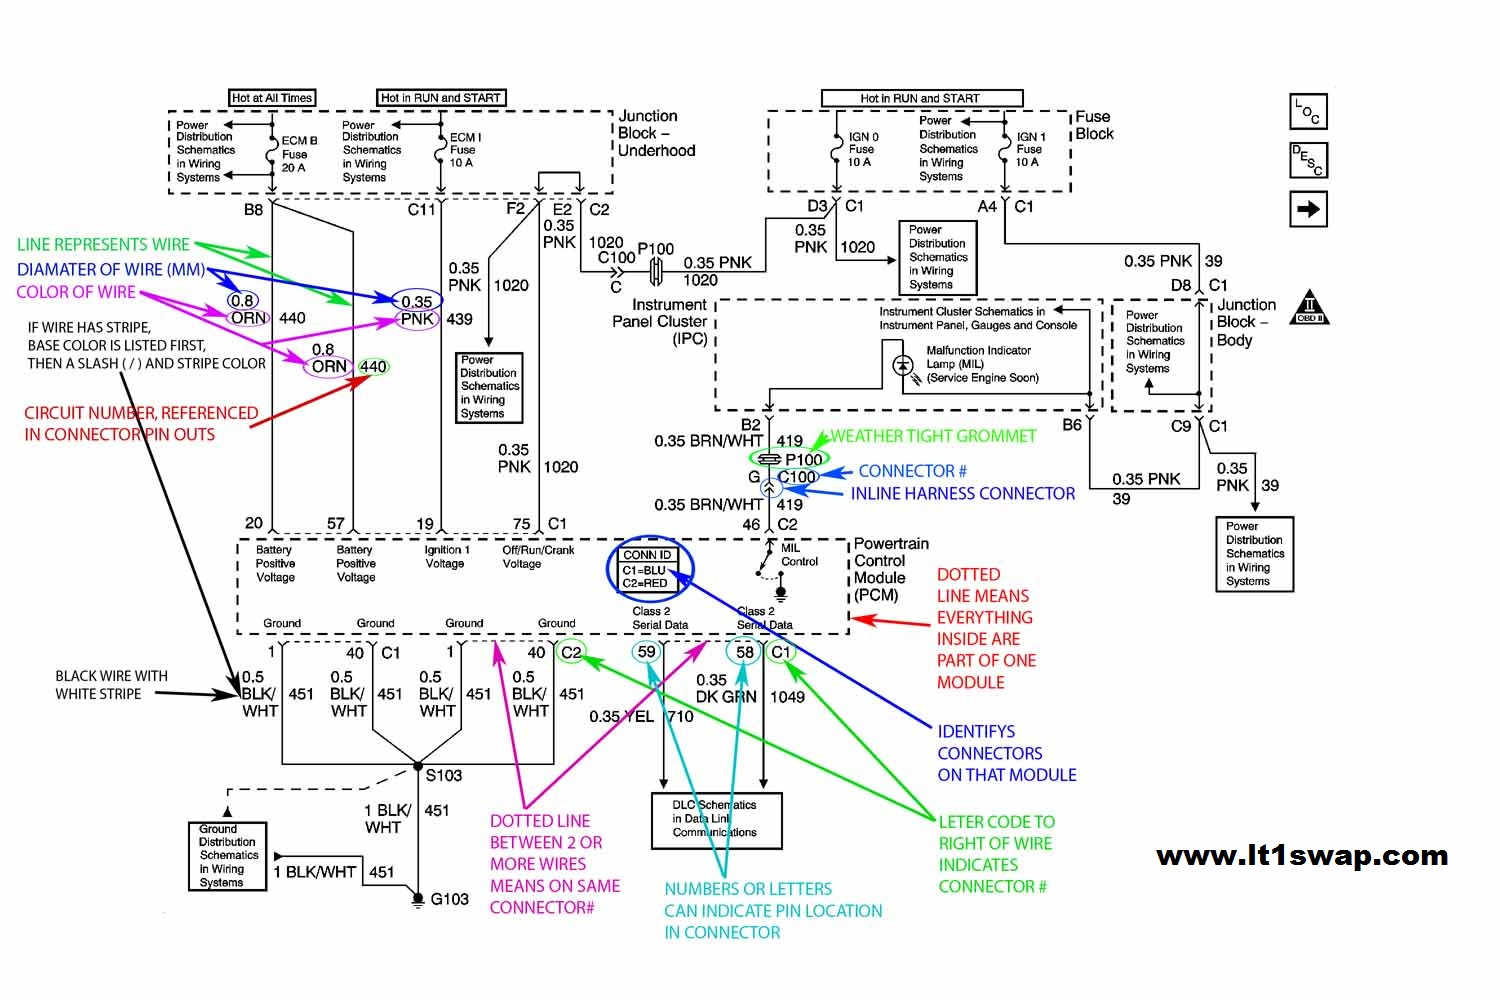 Wiring Harness Information - Ls1 Wiring Harness Diagram